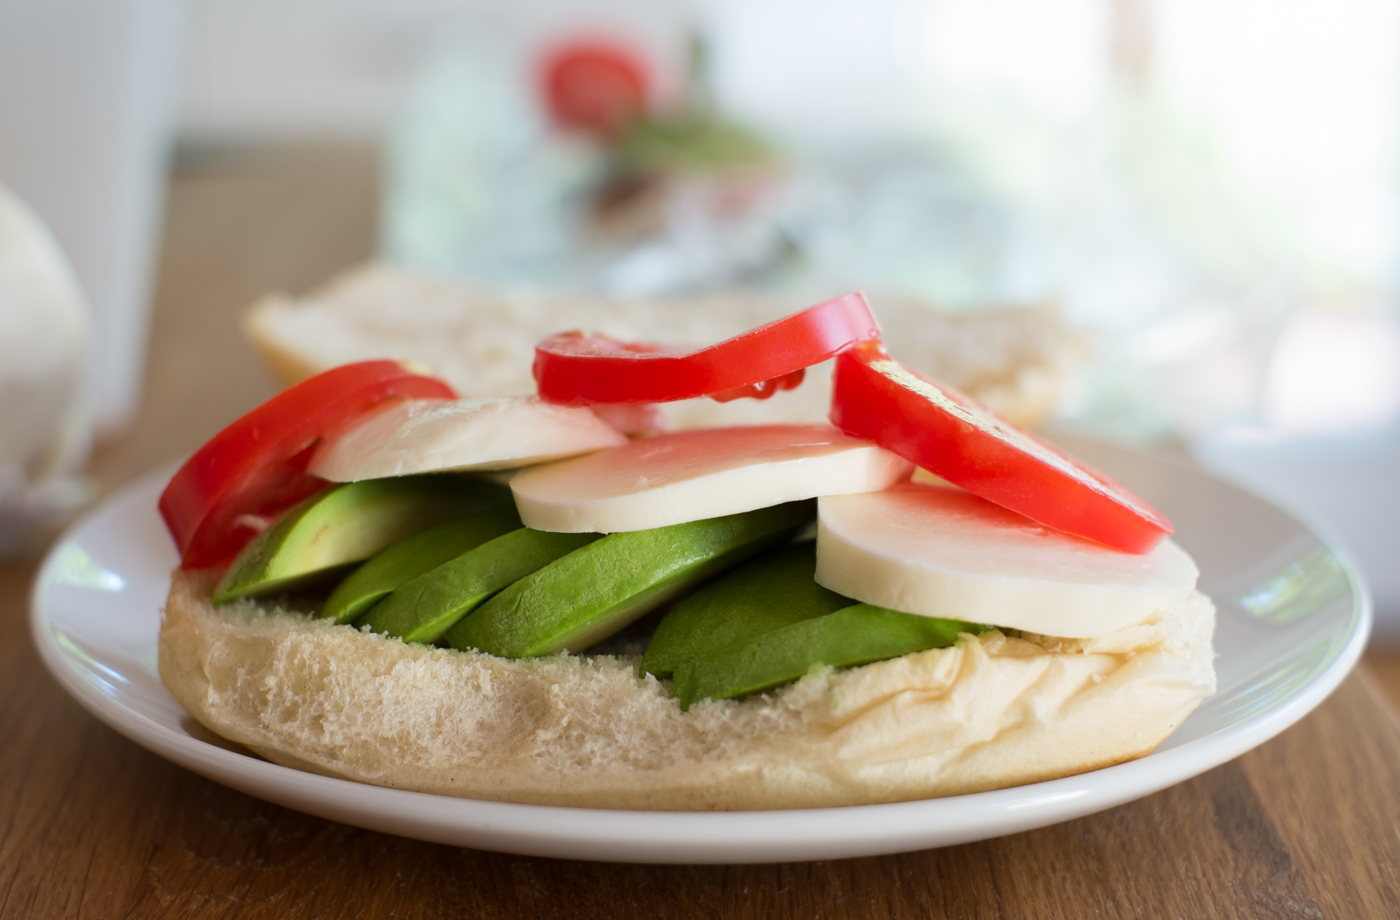 Tomato Mozzarella Avocado Sandwich